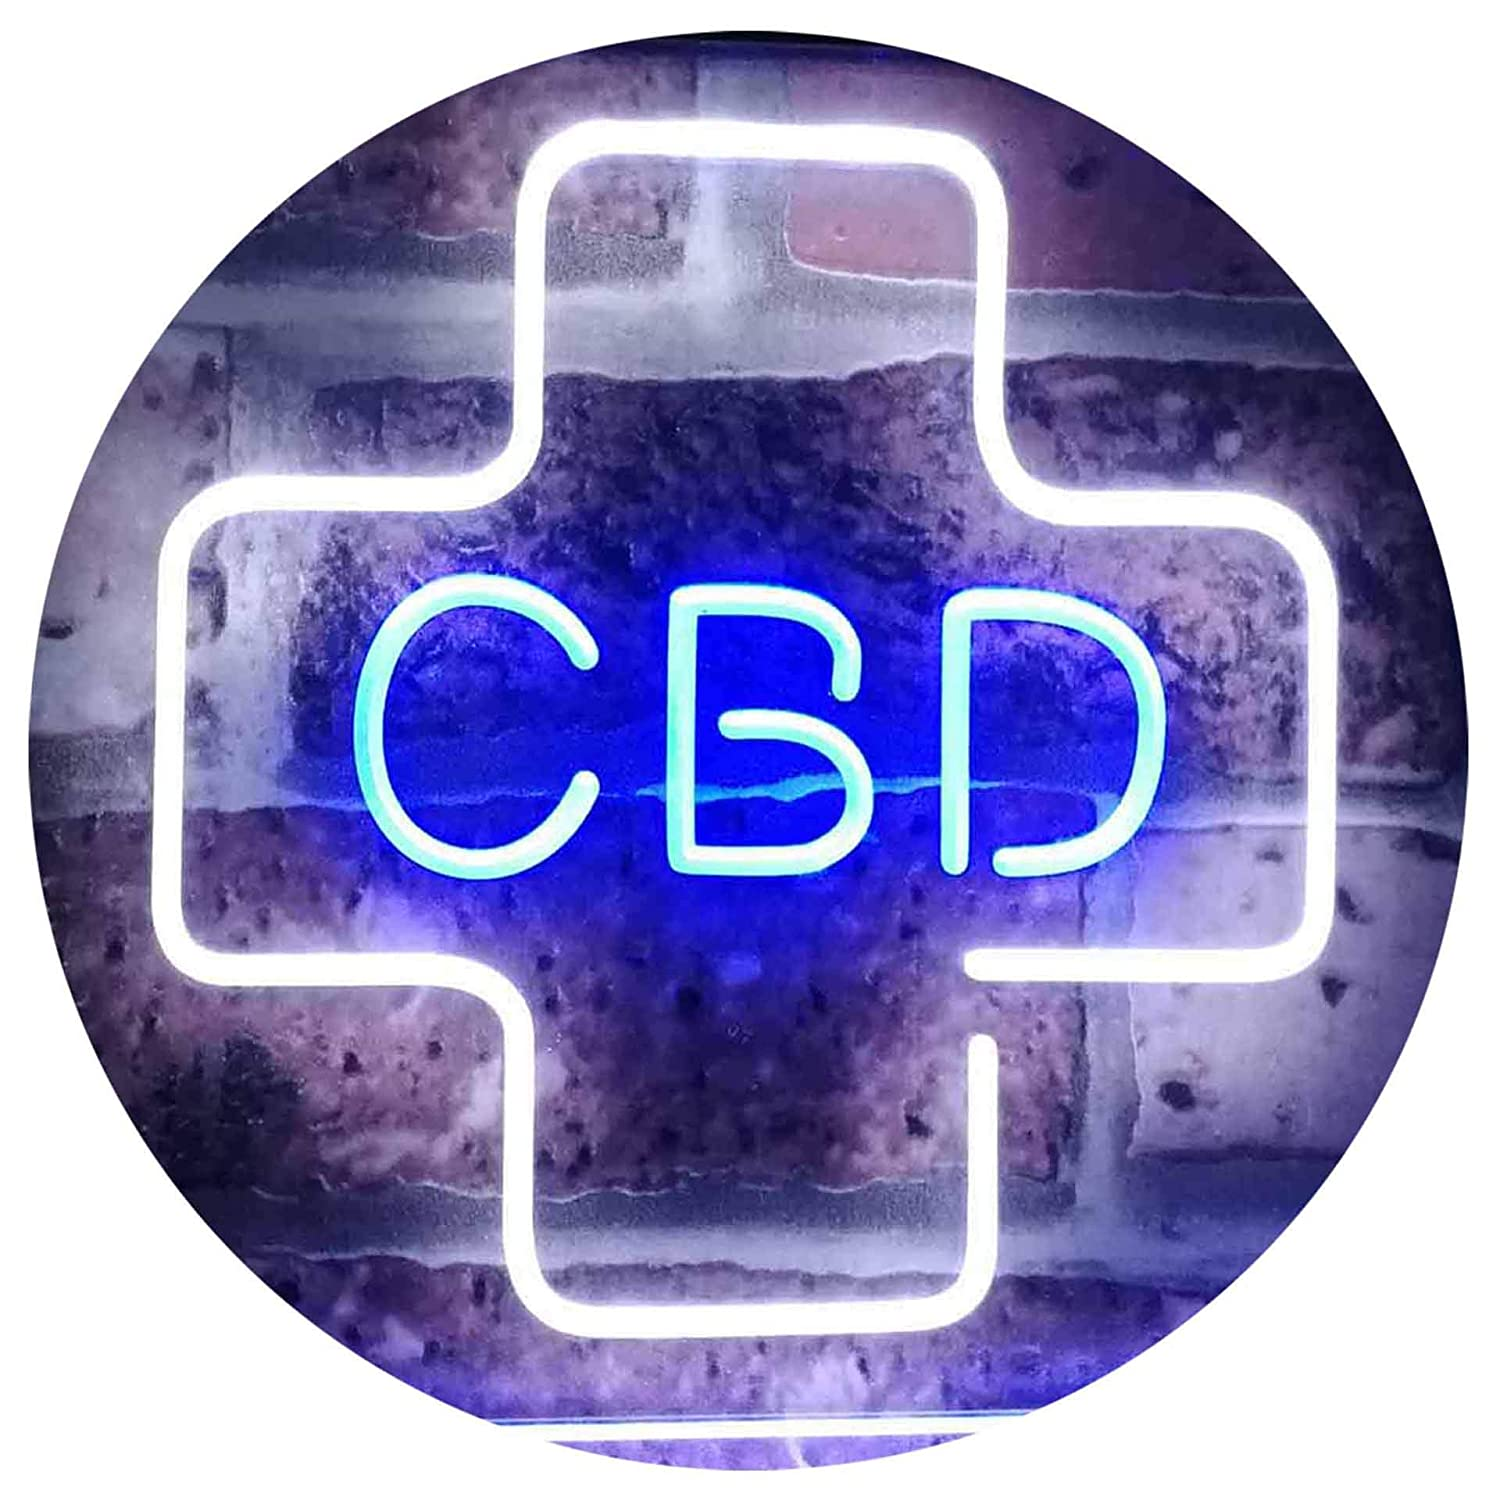 ADVPRO CBD Sold Here Dual Color LED Neon Sign Green /& Blue 12 x 8.5 st6s32-i3091-gb